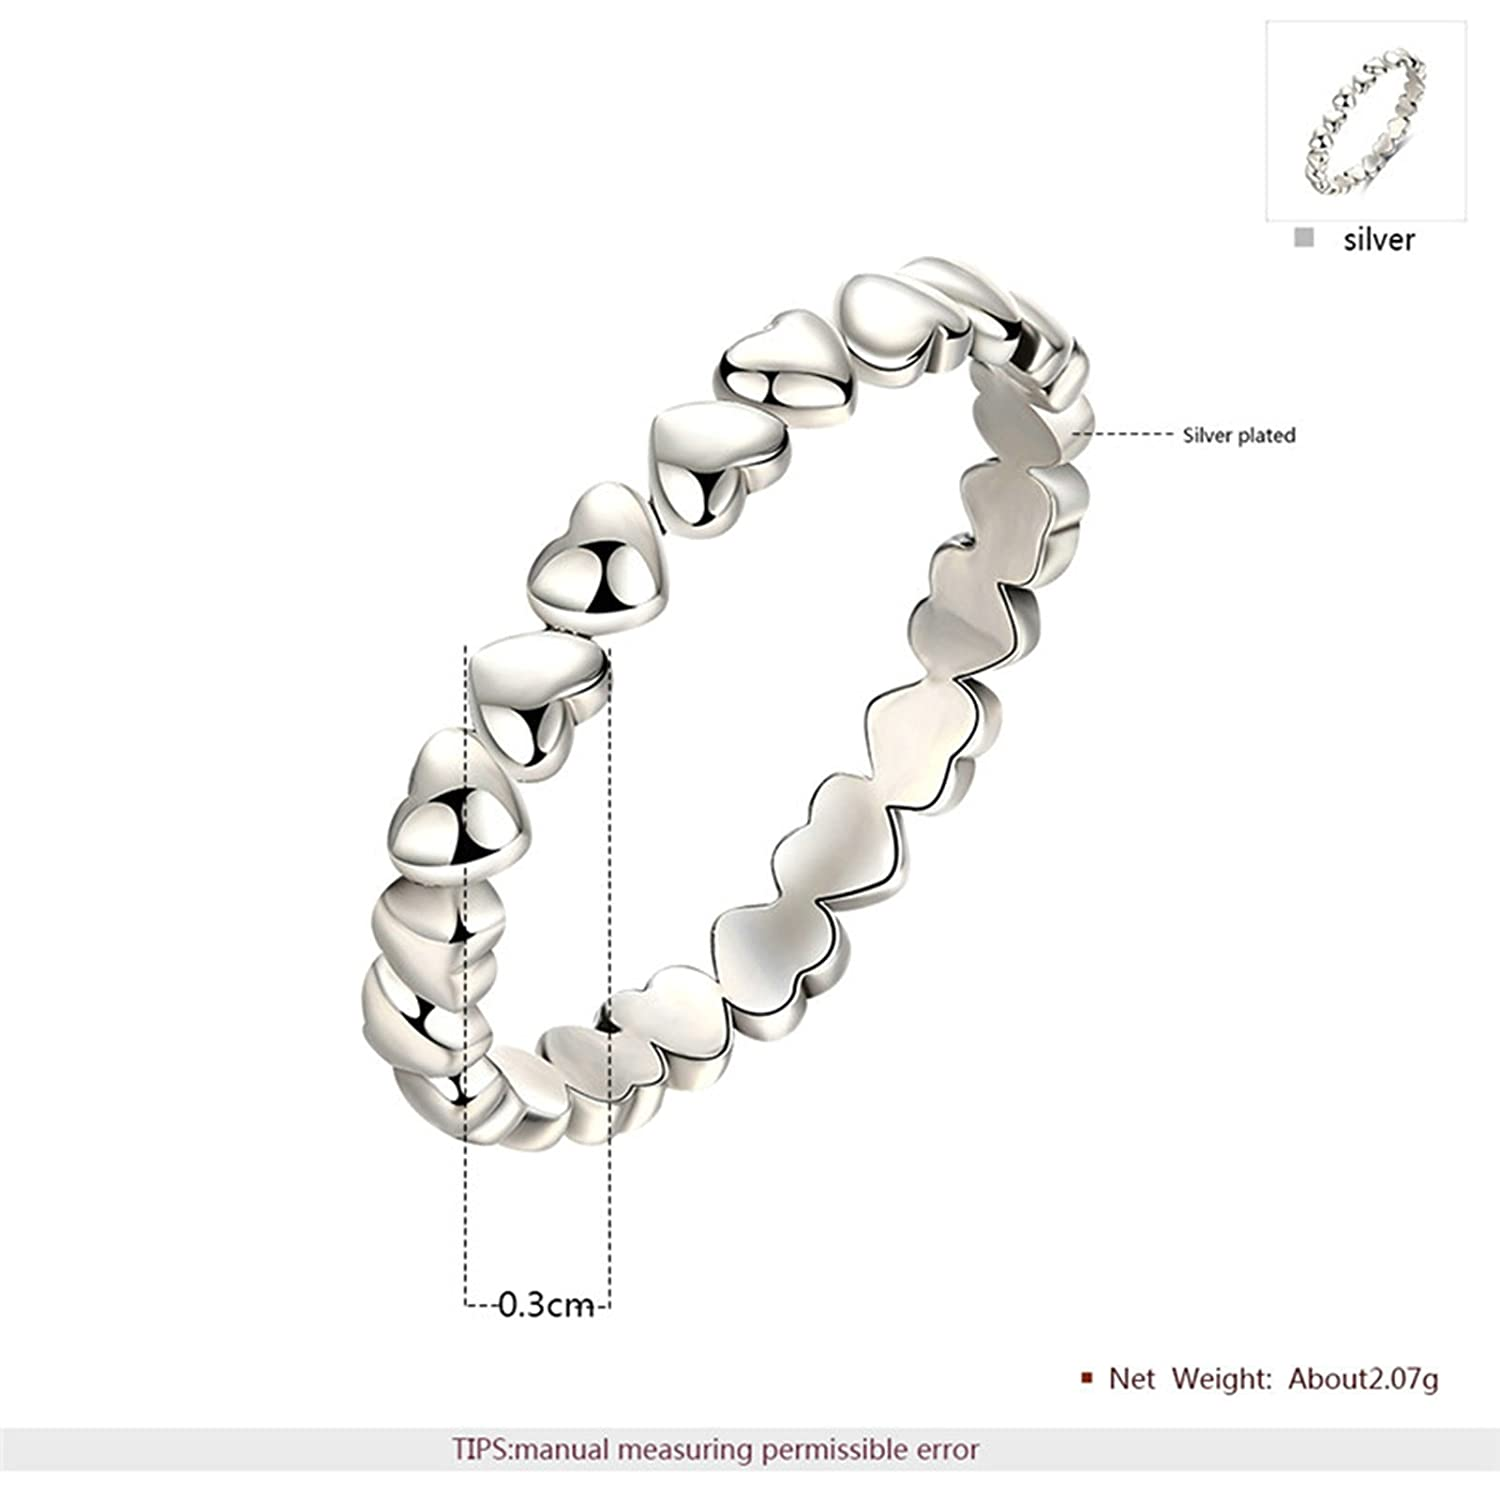 Bishilin Ring for Women Silver Plated High Gloss Polished Heart Wedding Engagement Ring Silver